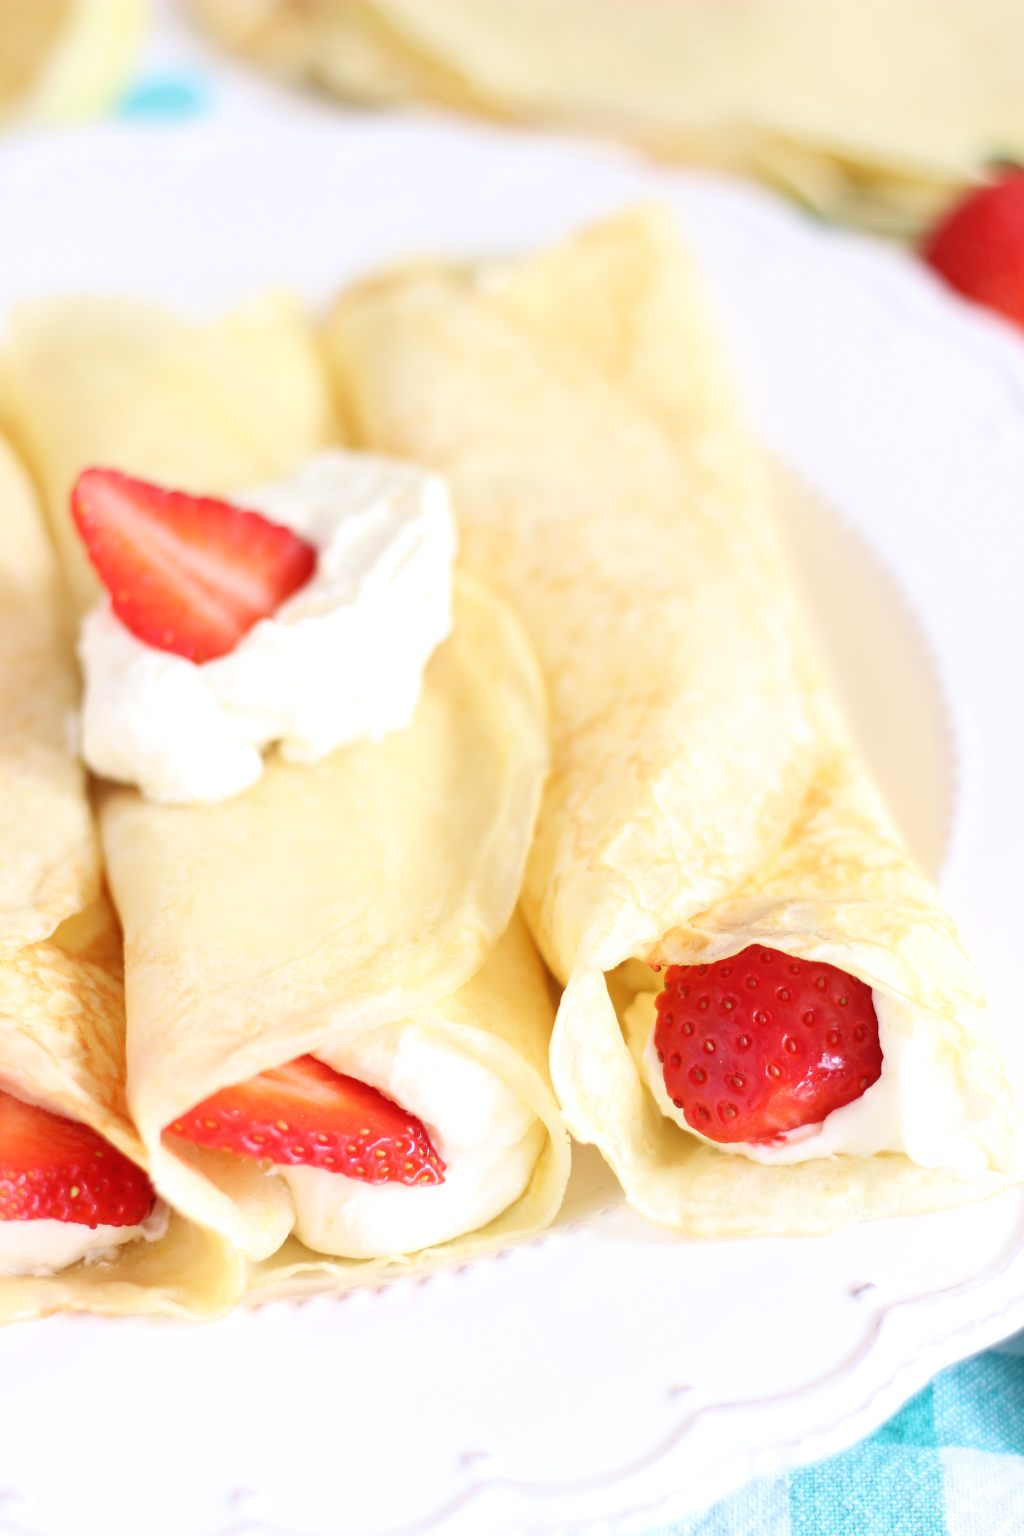 ... Mascarpone and whipped cream filling, topped with fresh strawberries